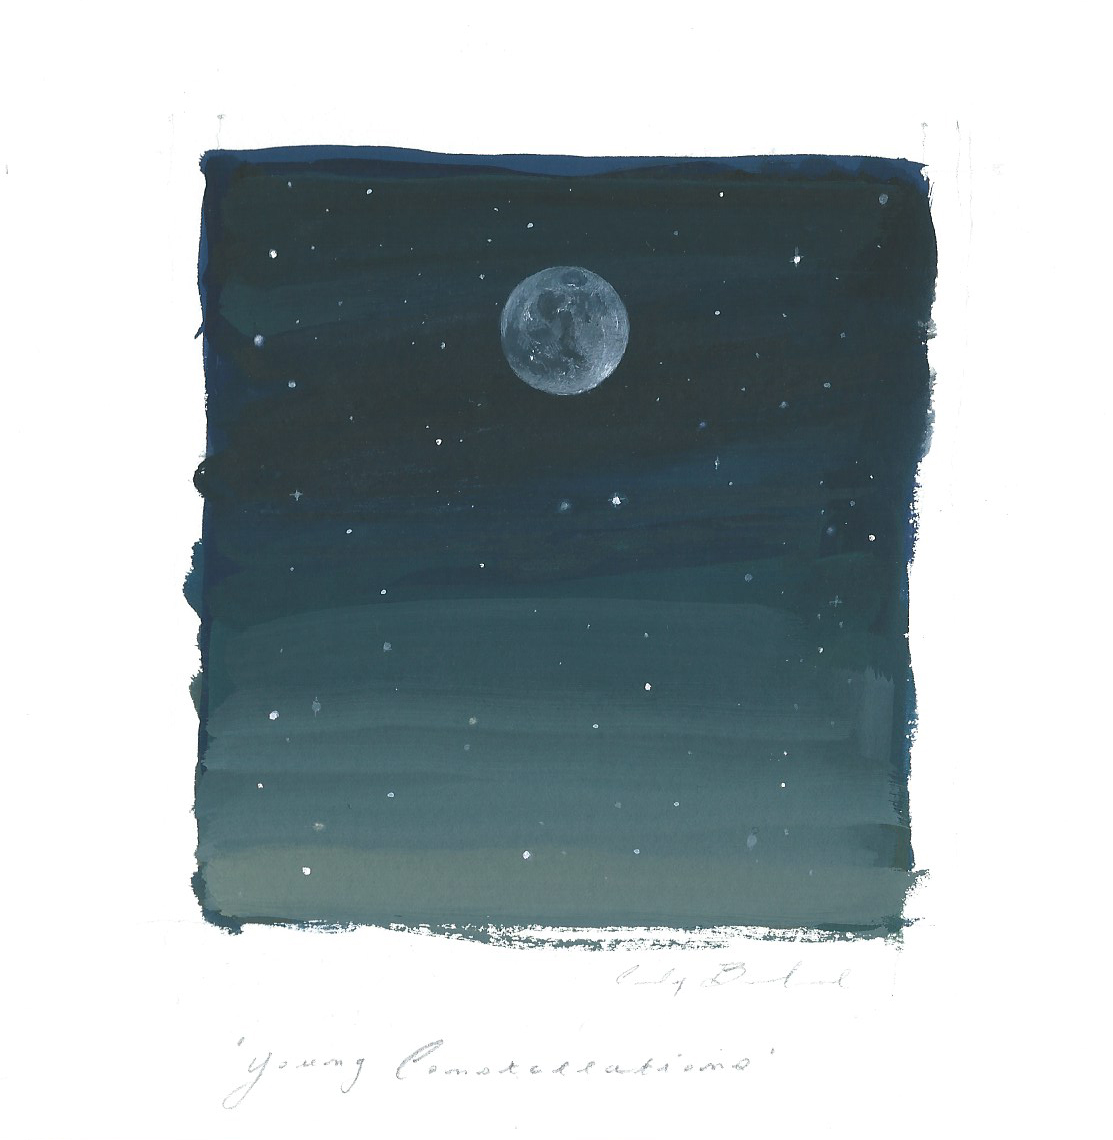 """""""Young Constellations,"""" 2015, gouache on paper, 6x6 in."""